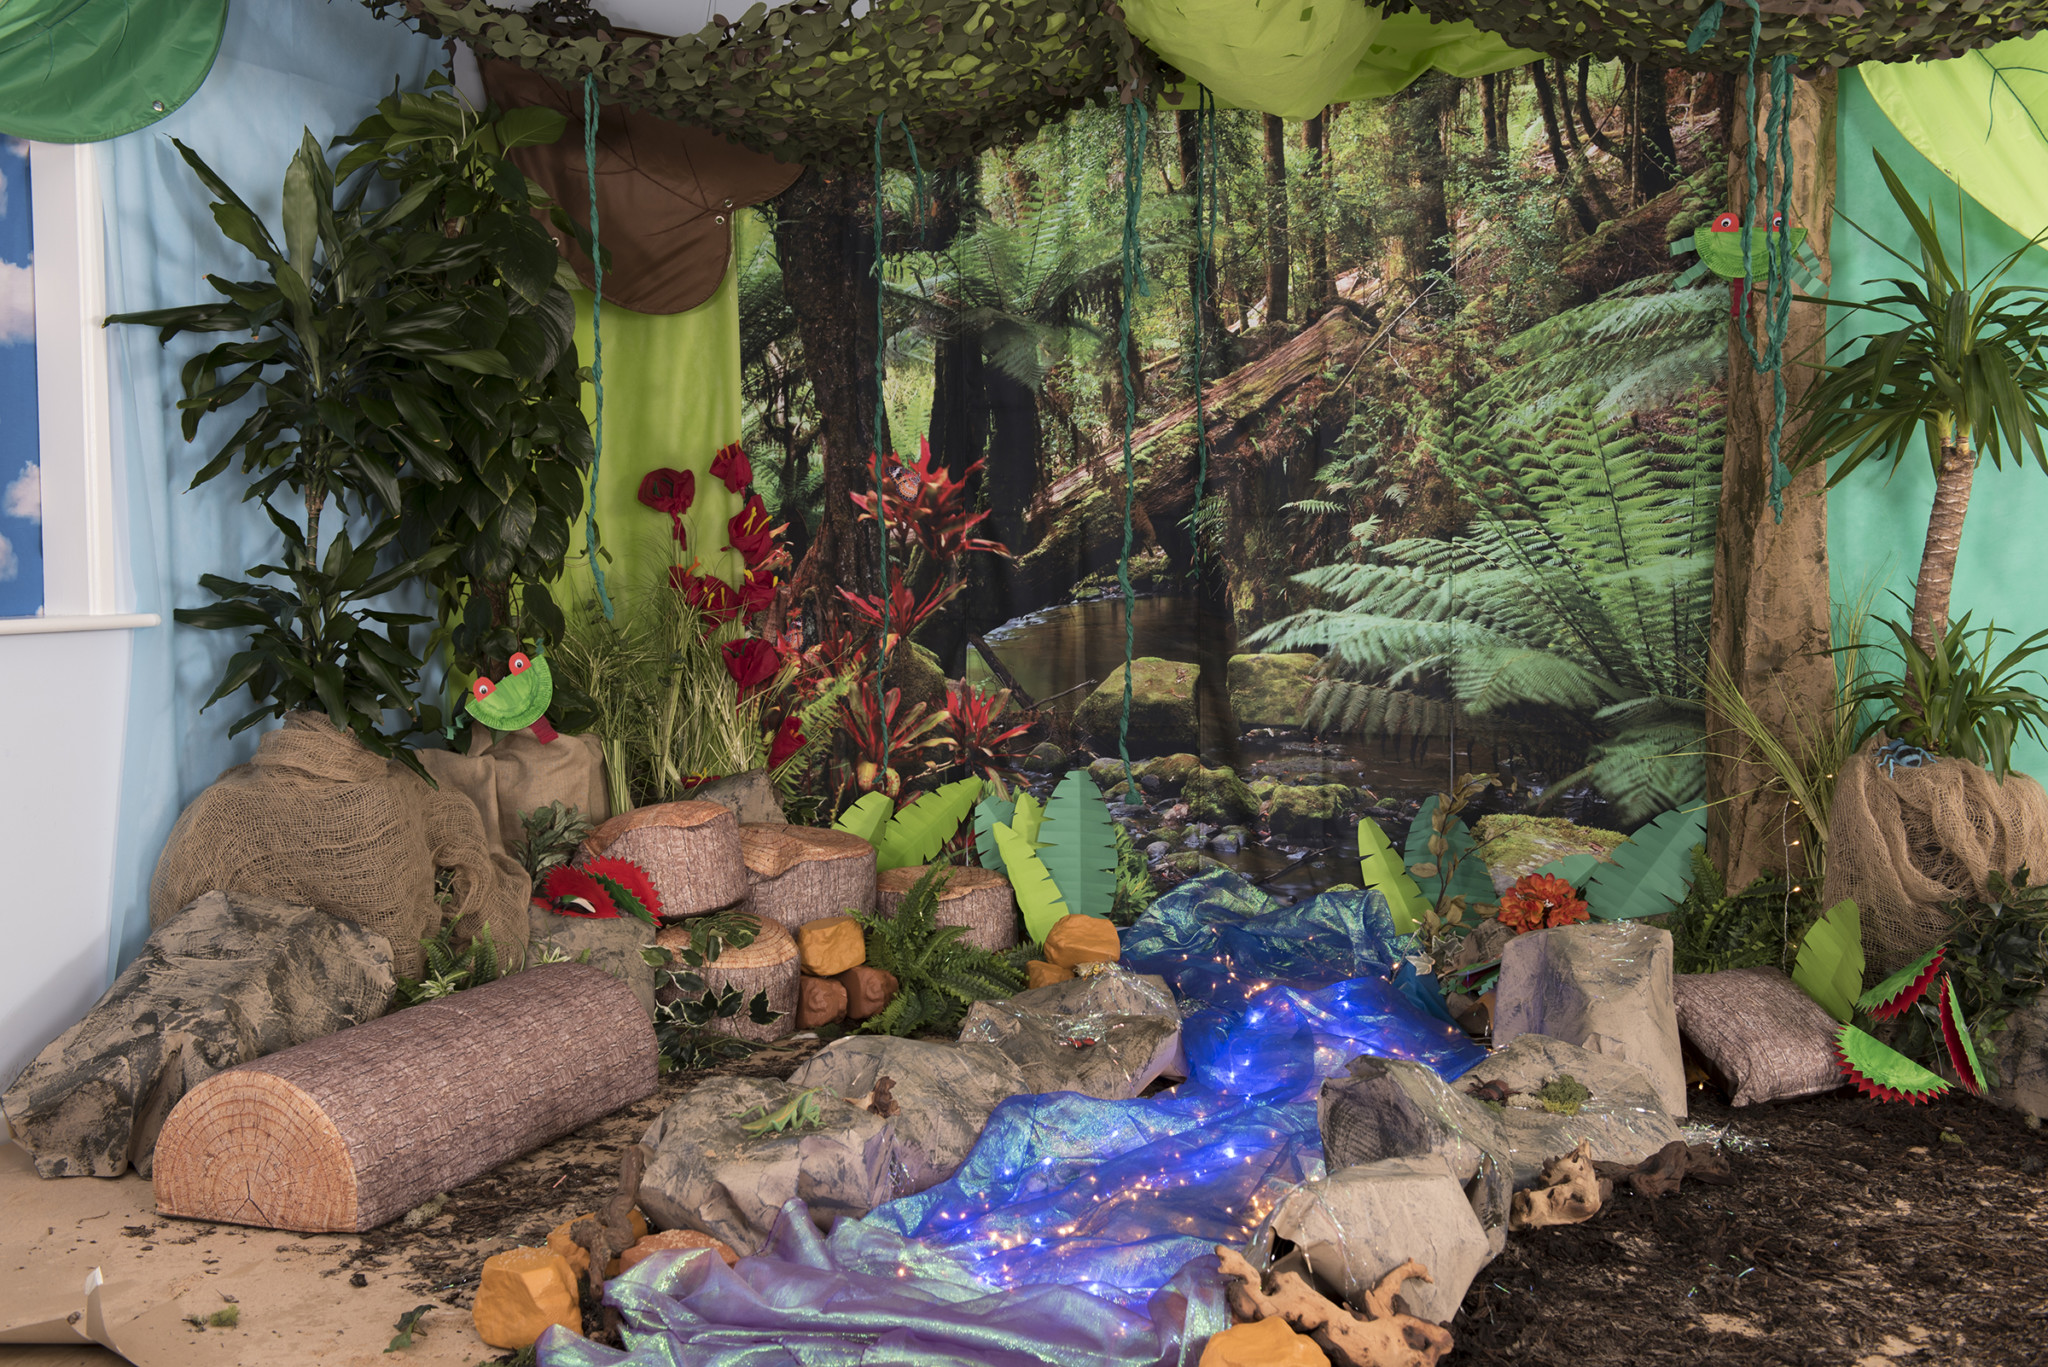 Rainforest backdrop immersive environment